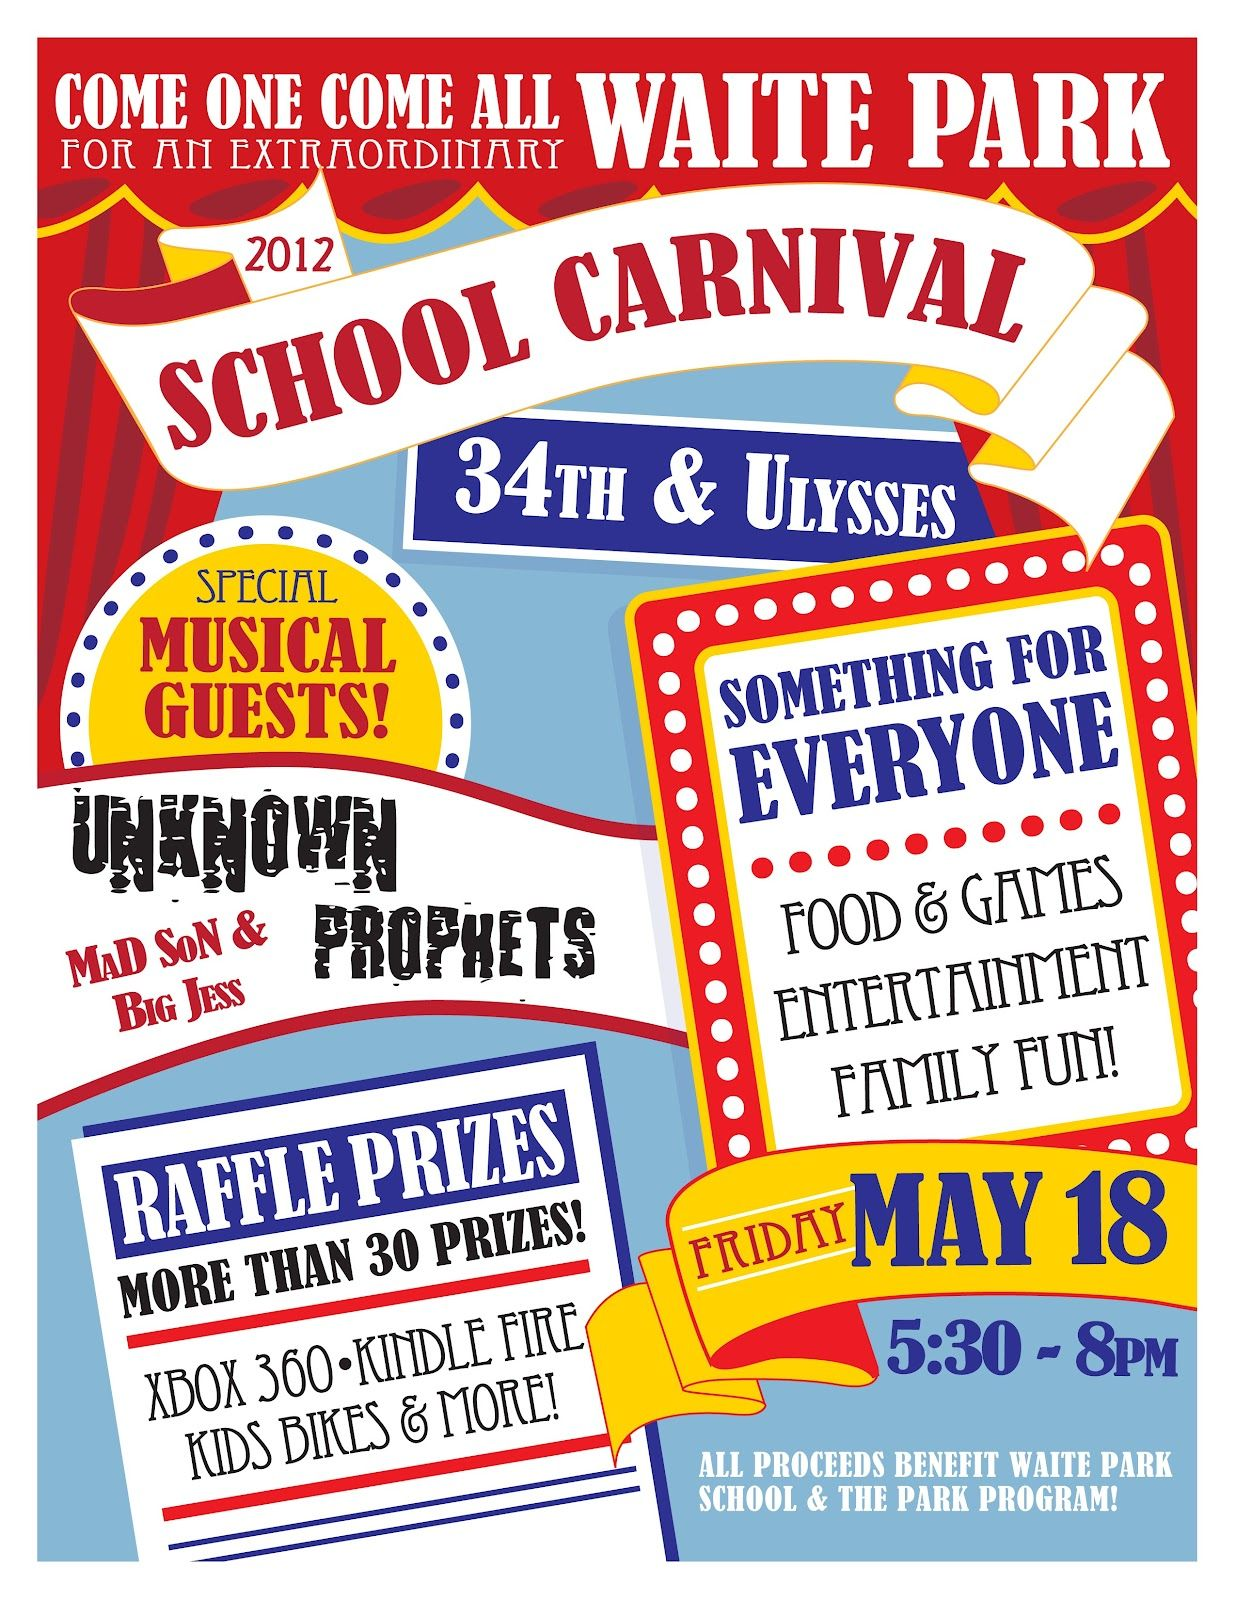 school carnival poster image google search school carnival carnival sign